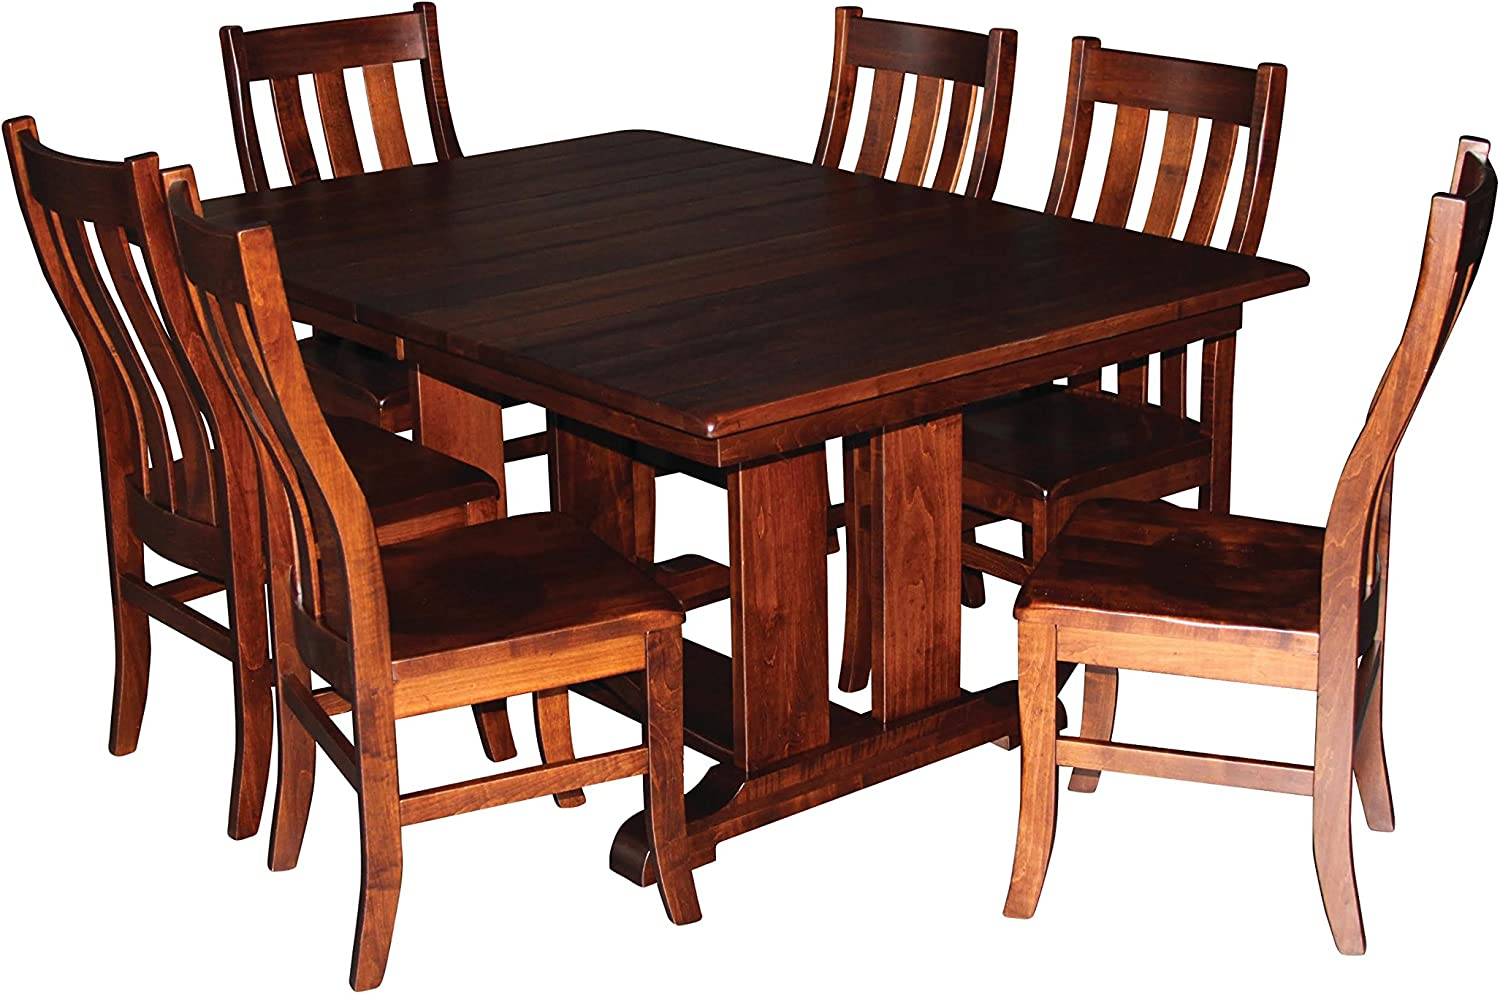 """Aspen Tree Trestle Dining Room Kitchen Table Chair Set 8 Side Chairs 60"""" x 42"""" Expandable with 2-12"""" Leaves Solid Wood Custom Amish Made"""